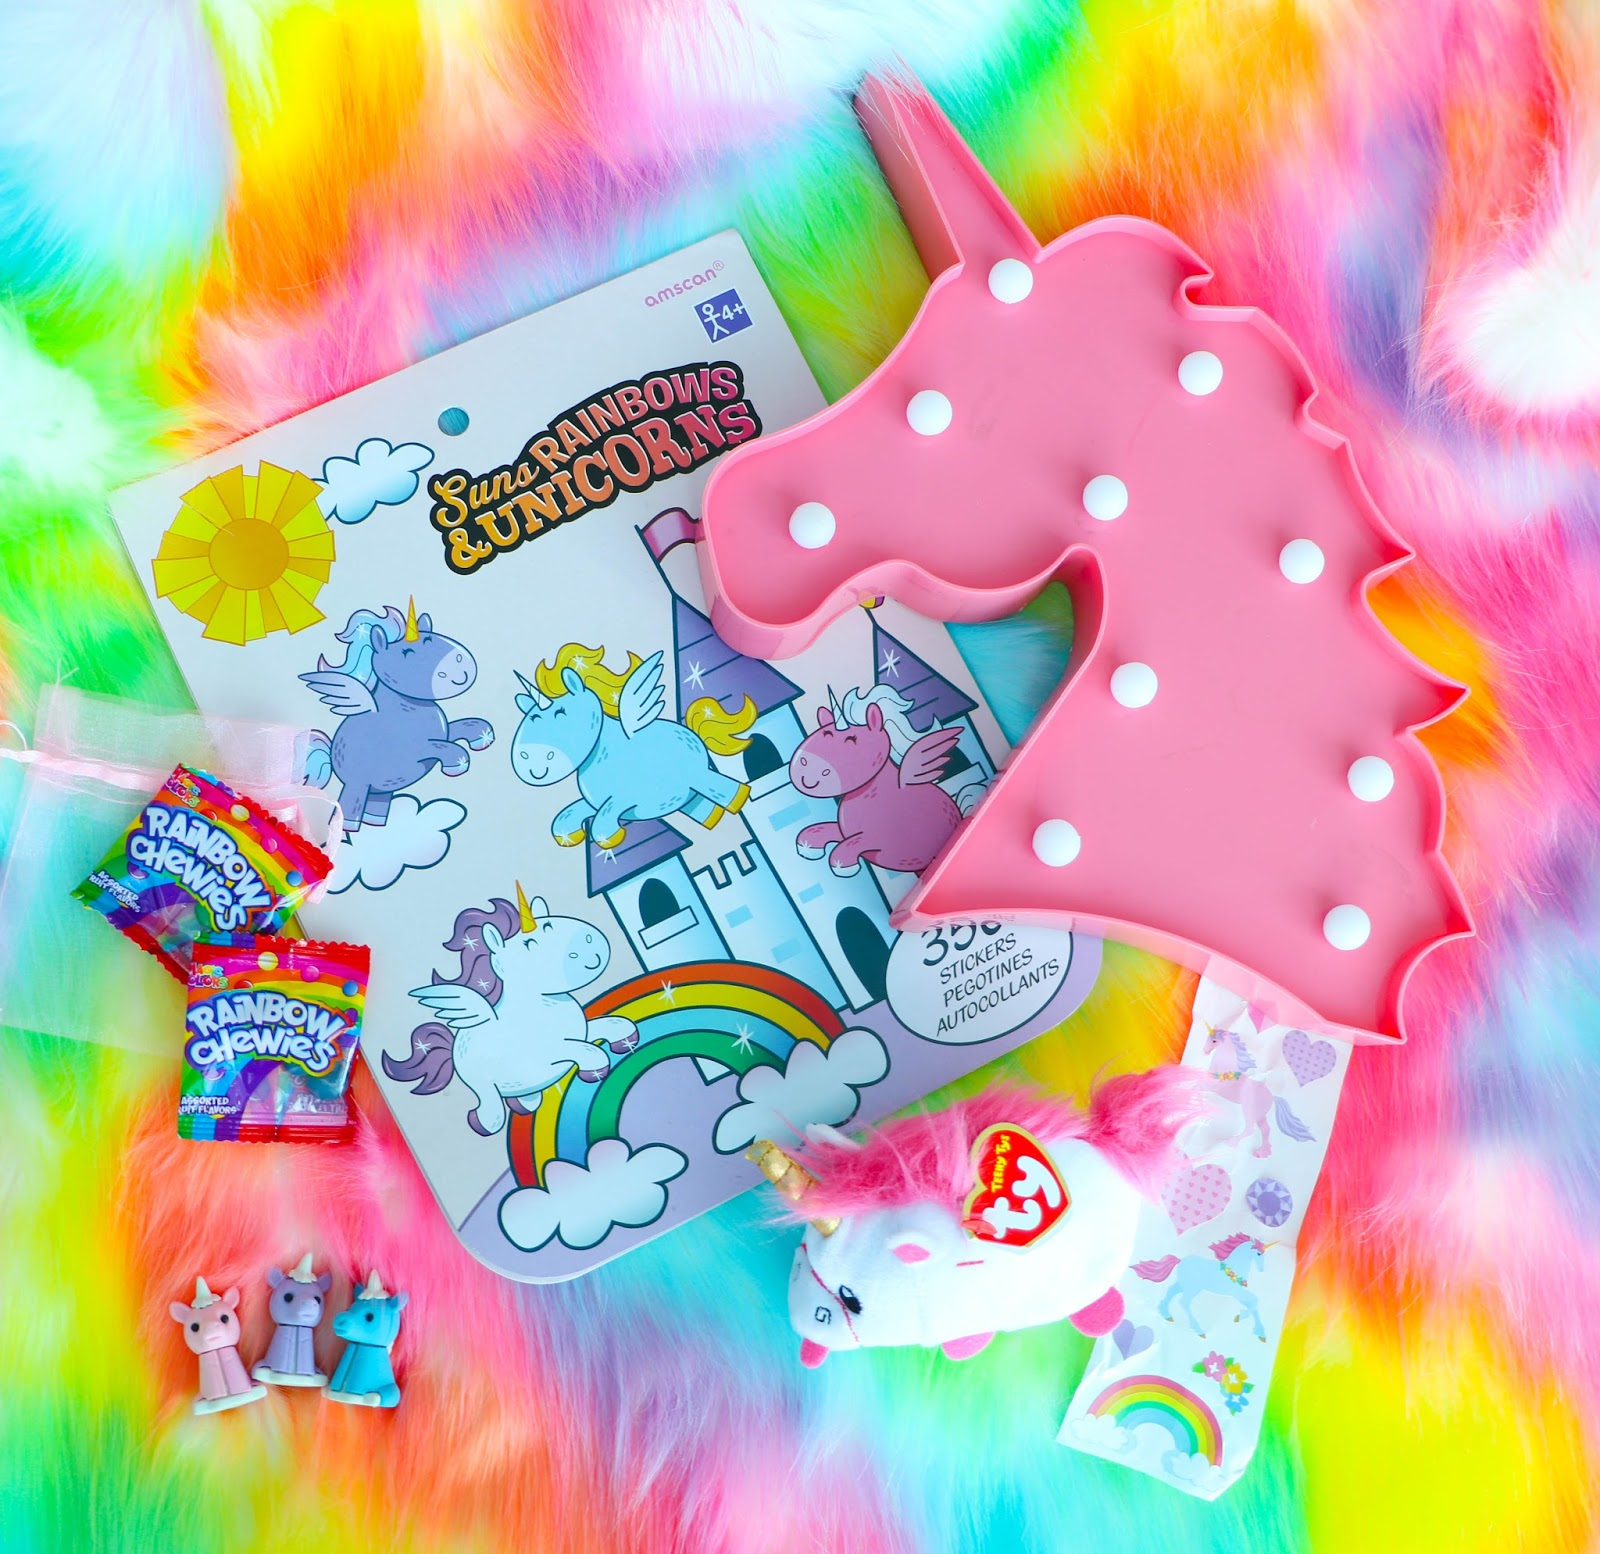 Unboxing the Unicorn Dream Box December 2017